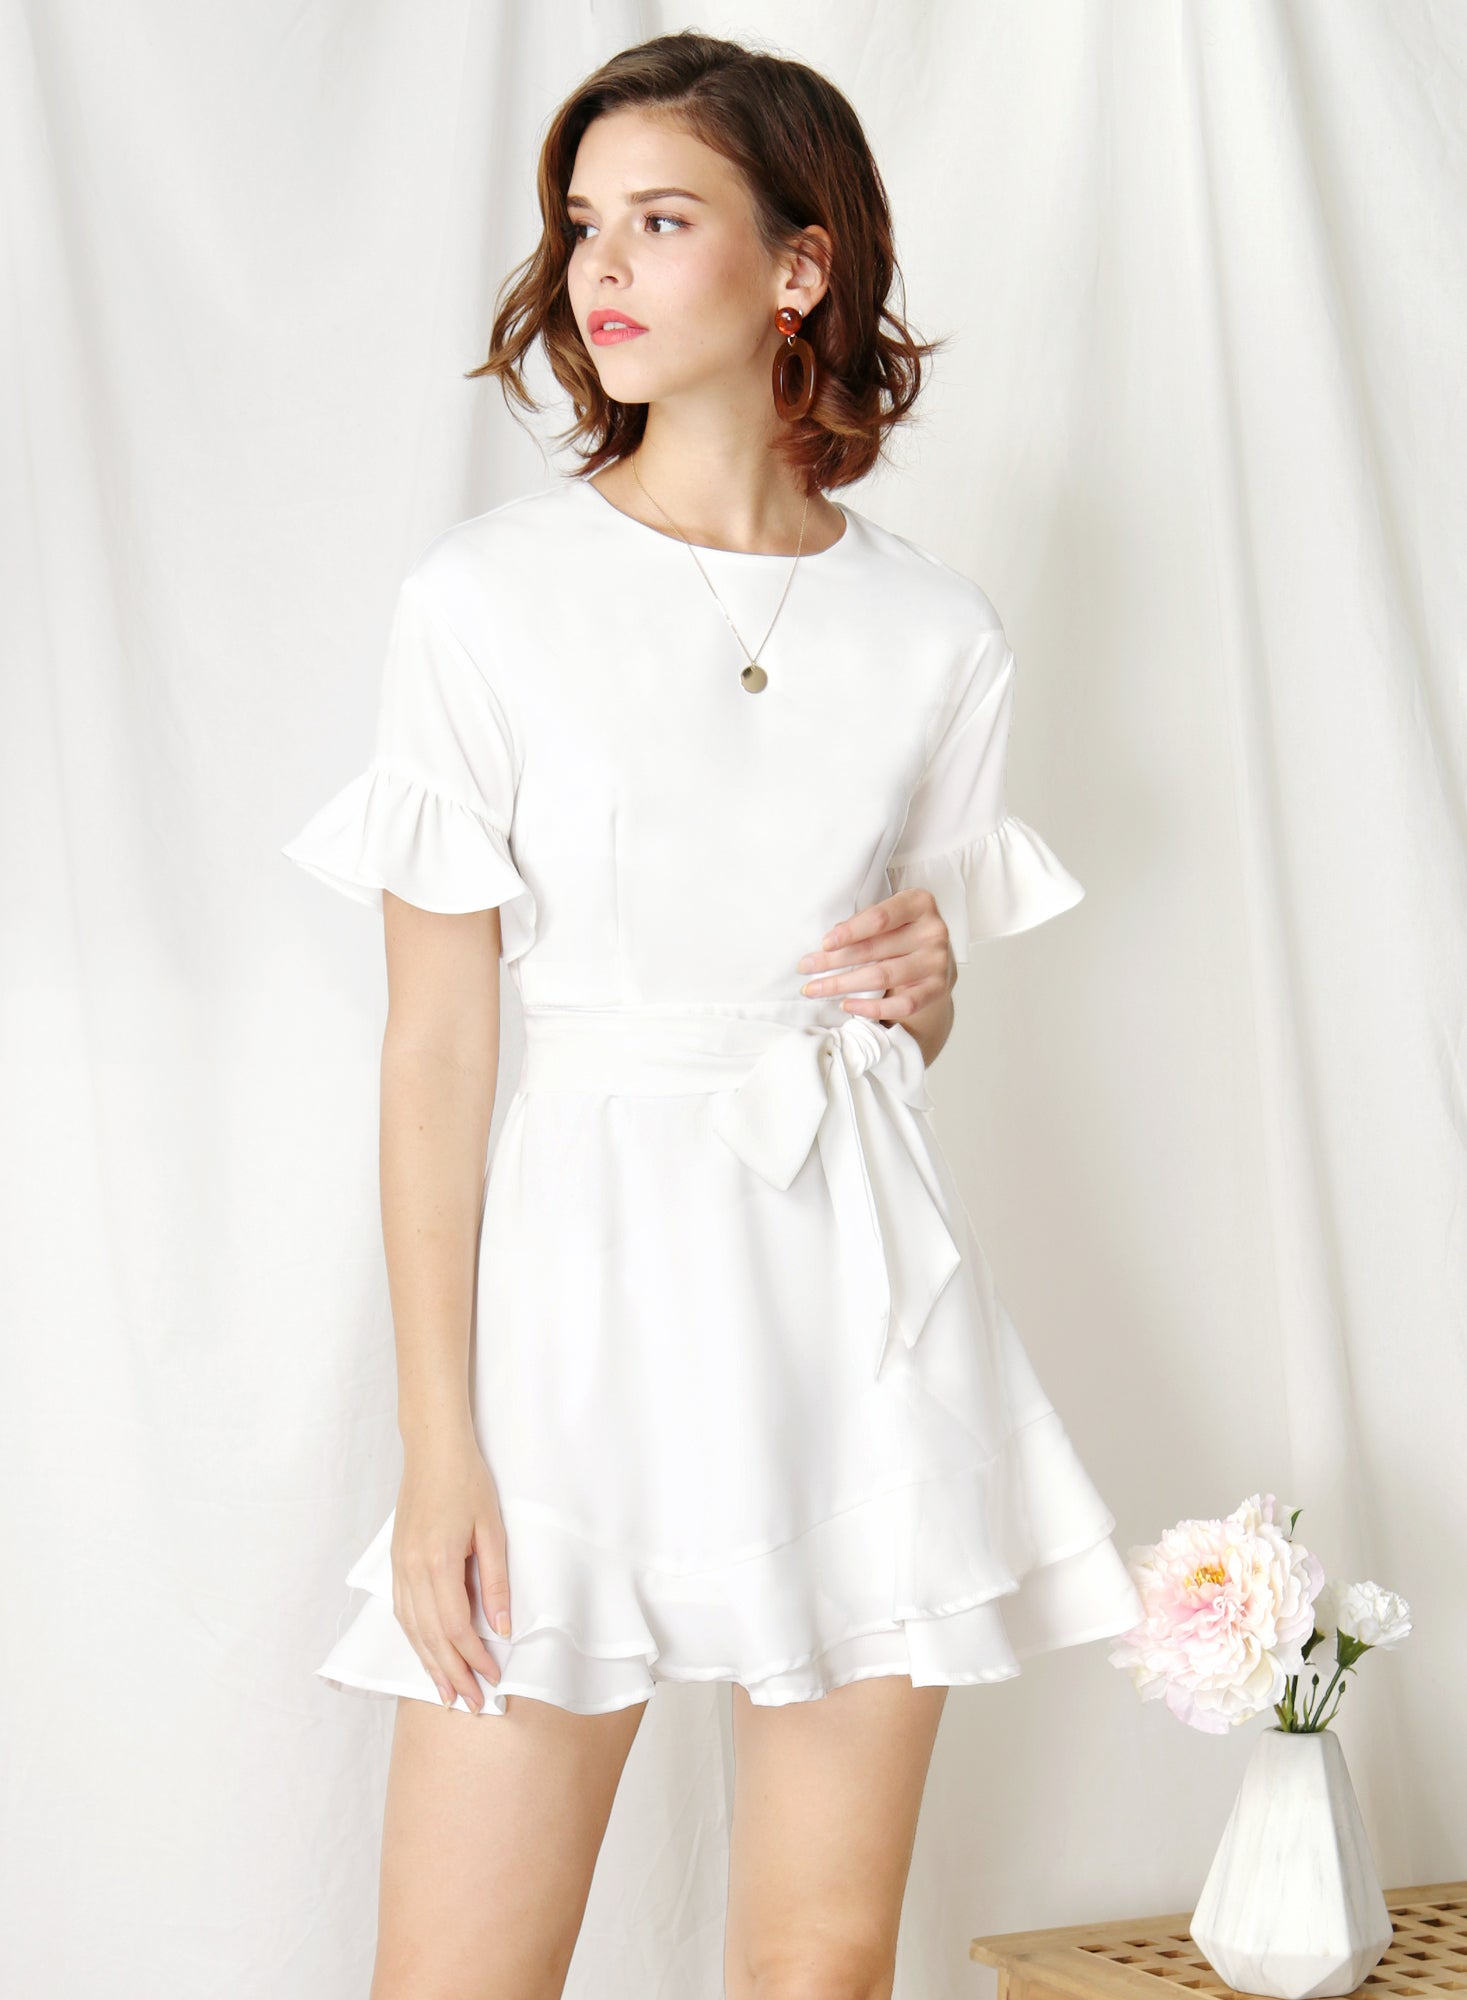 Daylight Ruffle Edge Dress (White) at $ 43.50 only sold at And Well Dressed Online Fashion Store Singapore